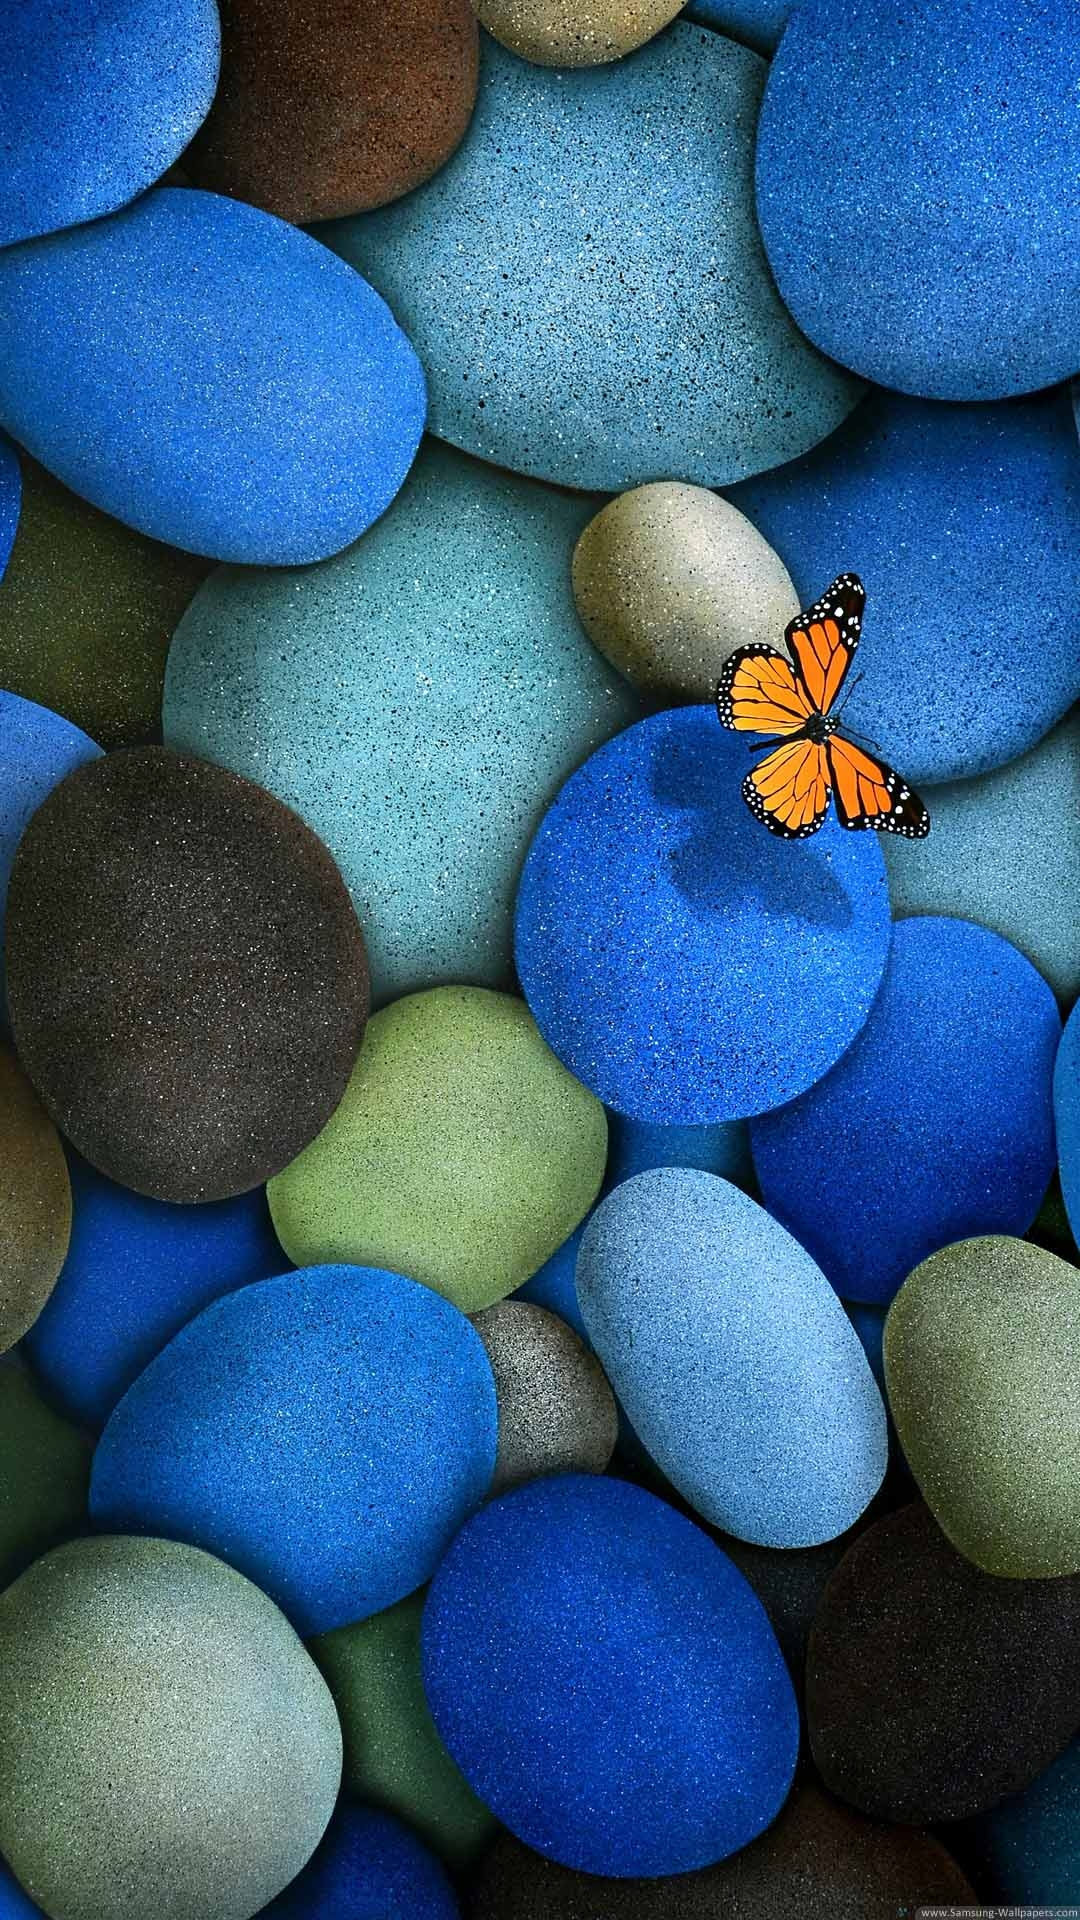 Free-background-images-hd-for-mobile-Download-Colorful-Stone-Best-Hd-Iphone-New-Backg-wallpaper-wp3405787